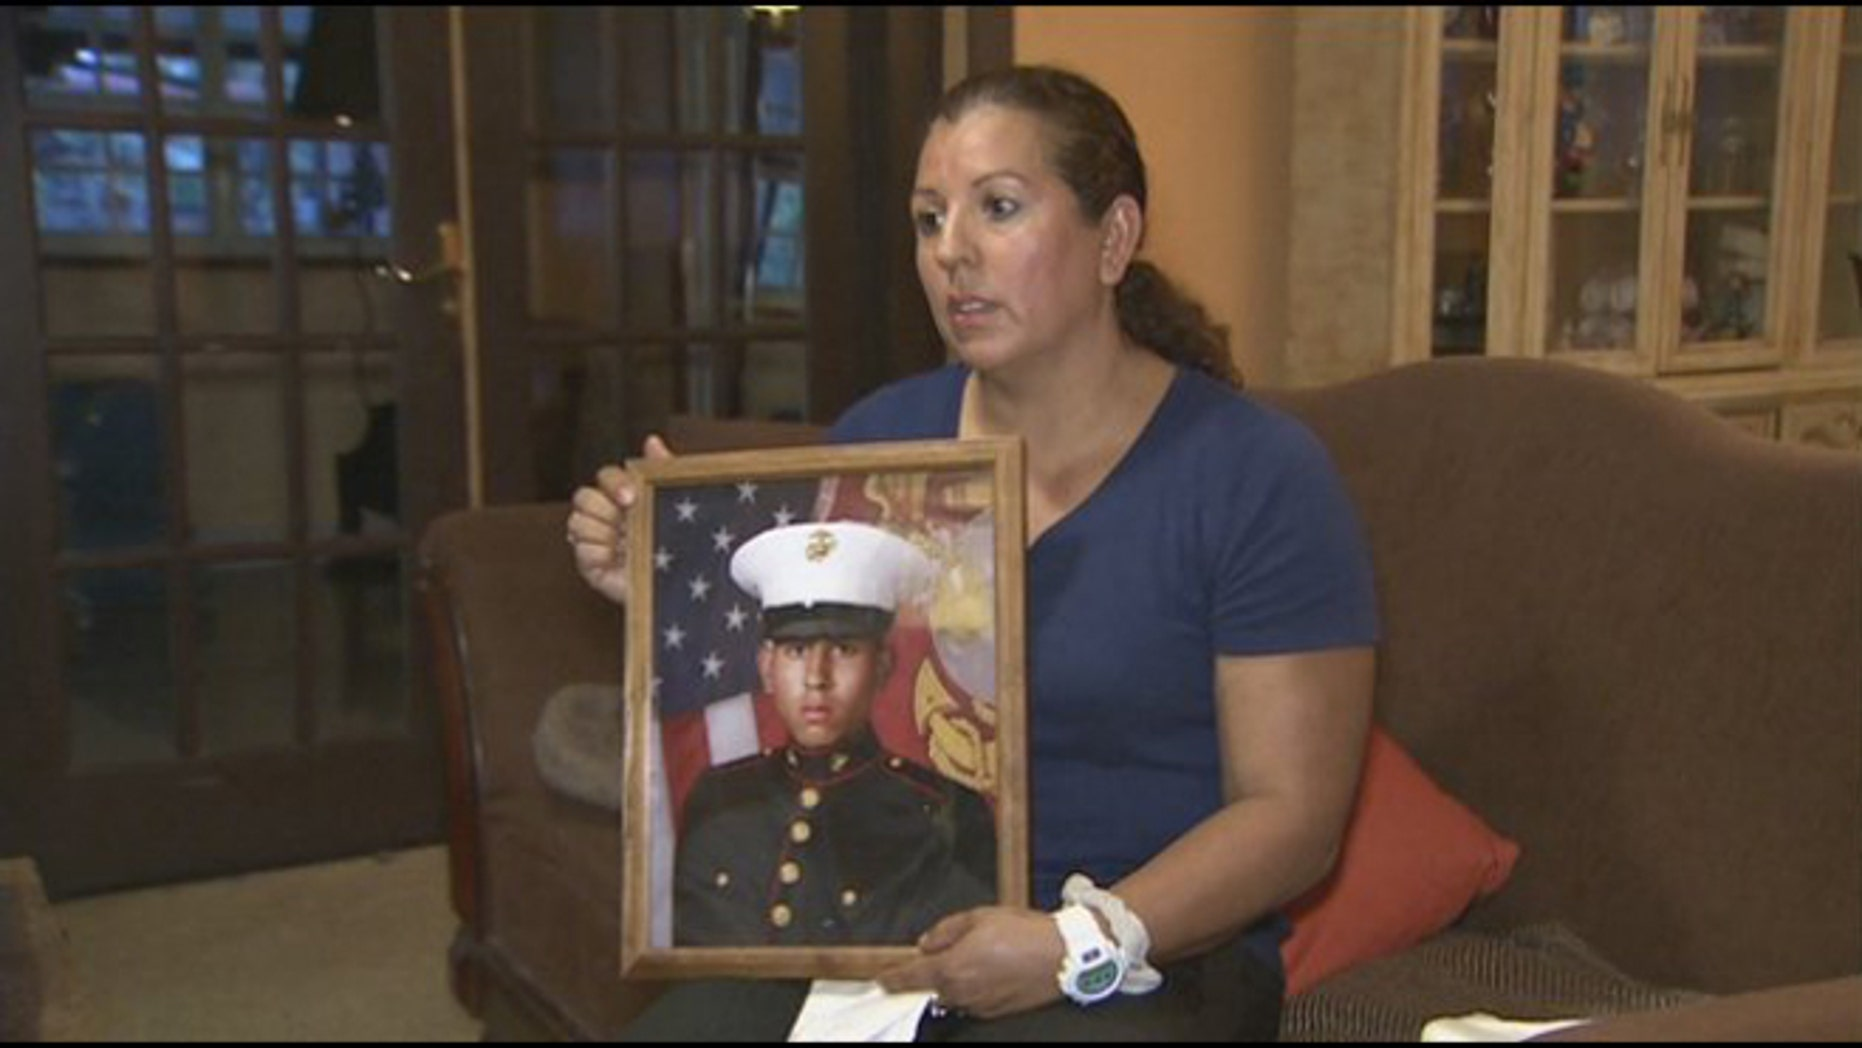 Rossana Lucas says she answered her cell phone because she had not heard from her Marine son in months.